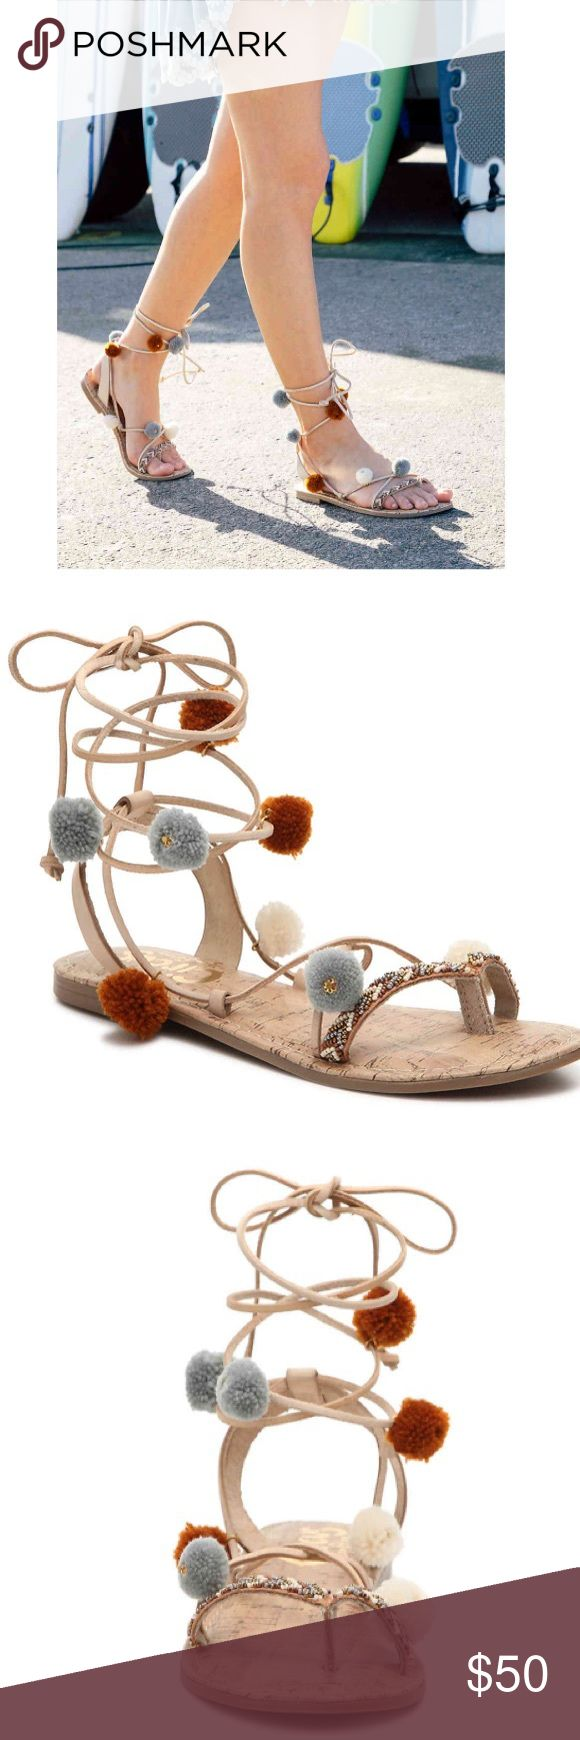 Circus Pom Poms For the perfect flat sandal to go with all your summer essentials, check out the Valencia thong sandals from Circus by Sam Edelman. With fun pom accents and beaded detailing, these cute lace-up sandals will add a boho flair to your casual look! Faux leather upper Ghillie lace-up with wrap around ankle tie Chevron patterned beading and pom accents Synthetic sole brand new in box🚭🚫🐱🚫🐶🏡 Circus by Sam Edelman Shoes Sandals